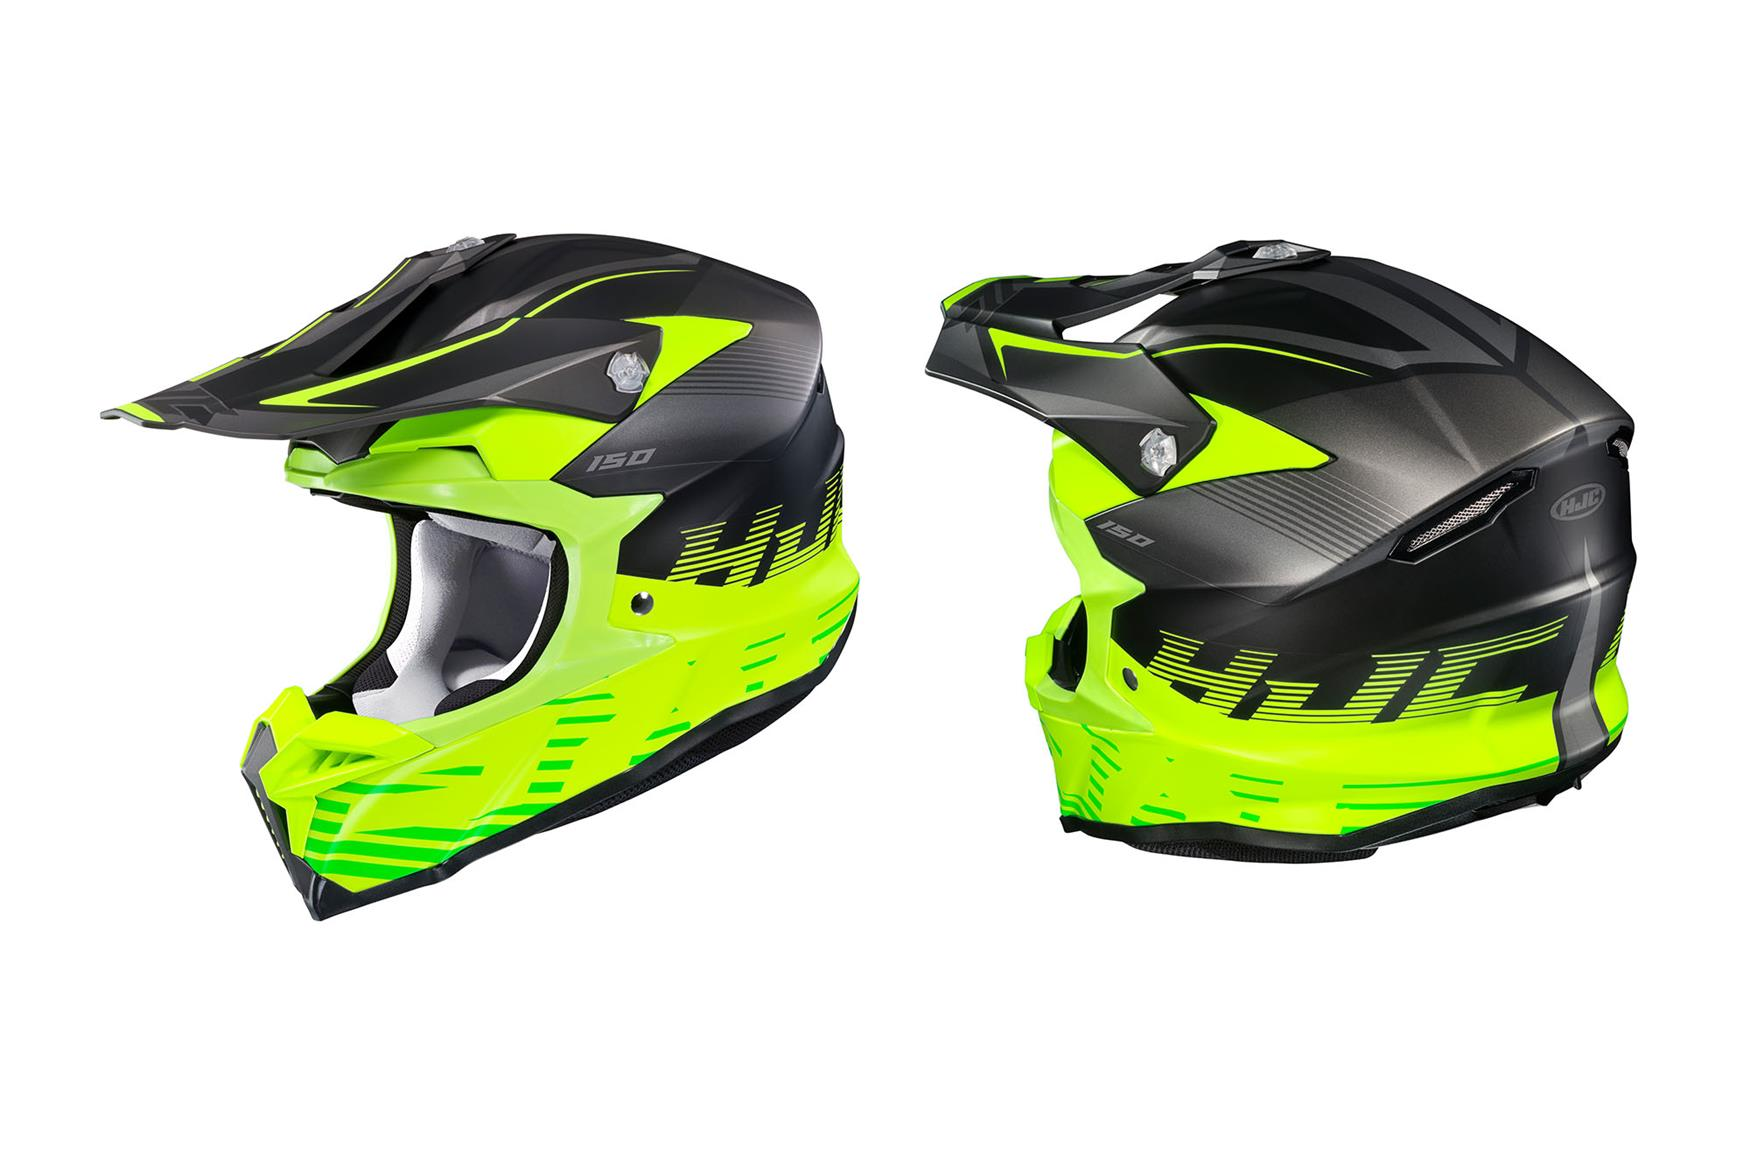 HJC i50 off-road helmet